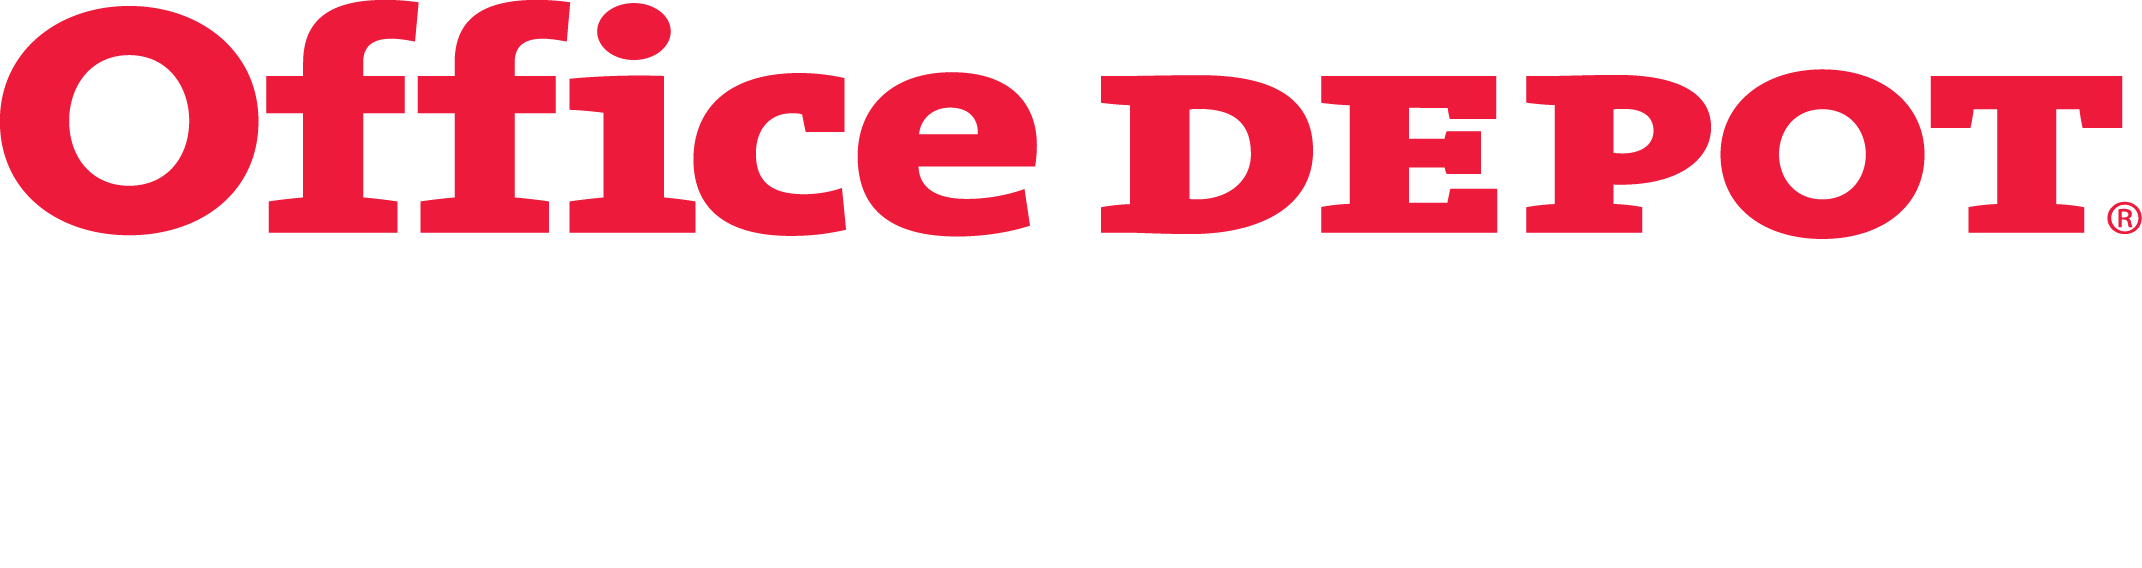 office depot logo vector wwwpixsharkcom images